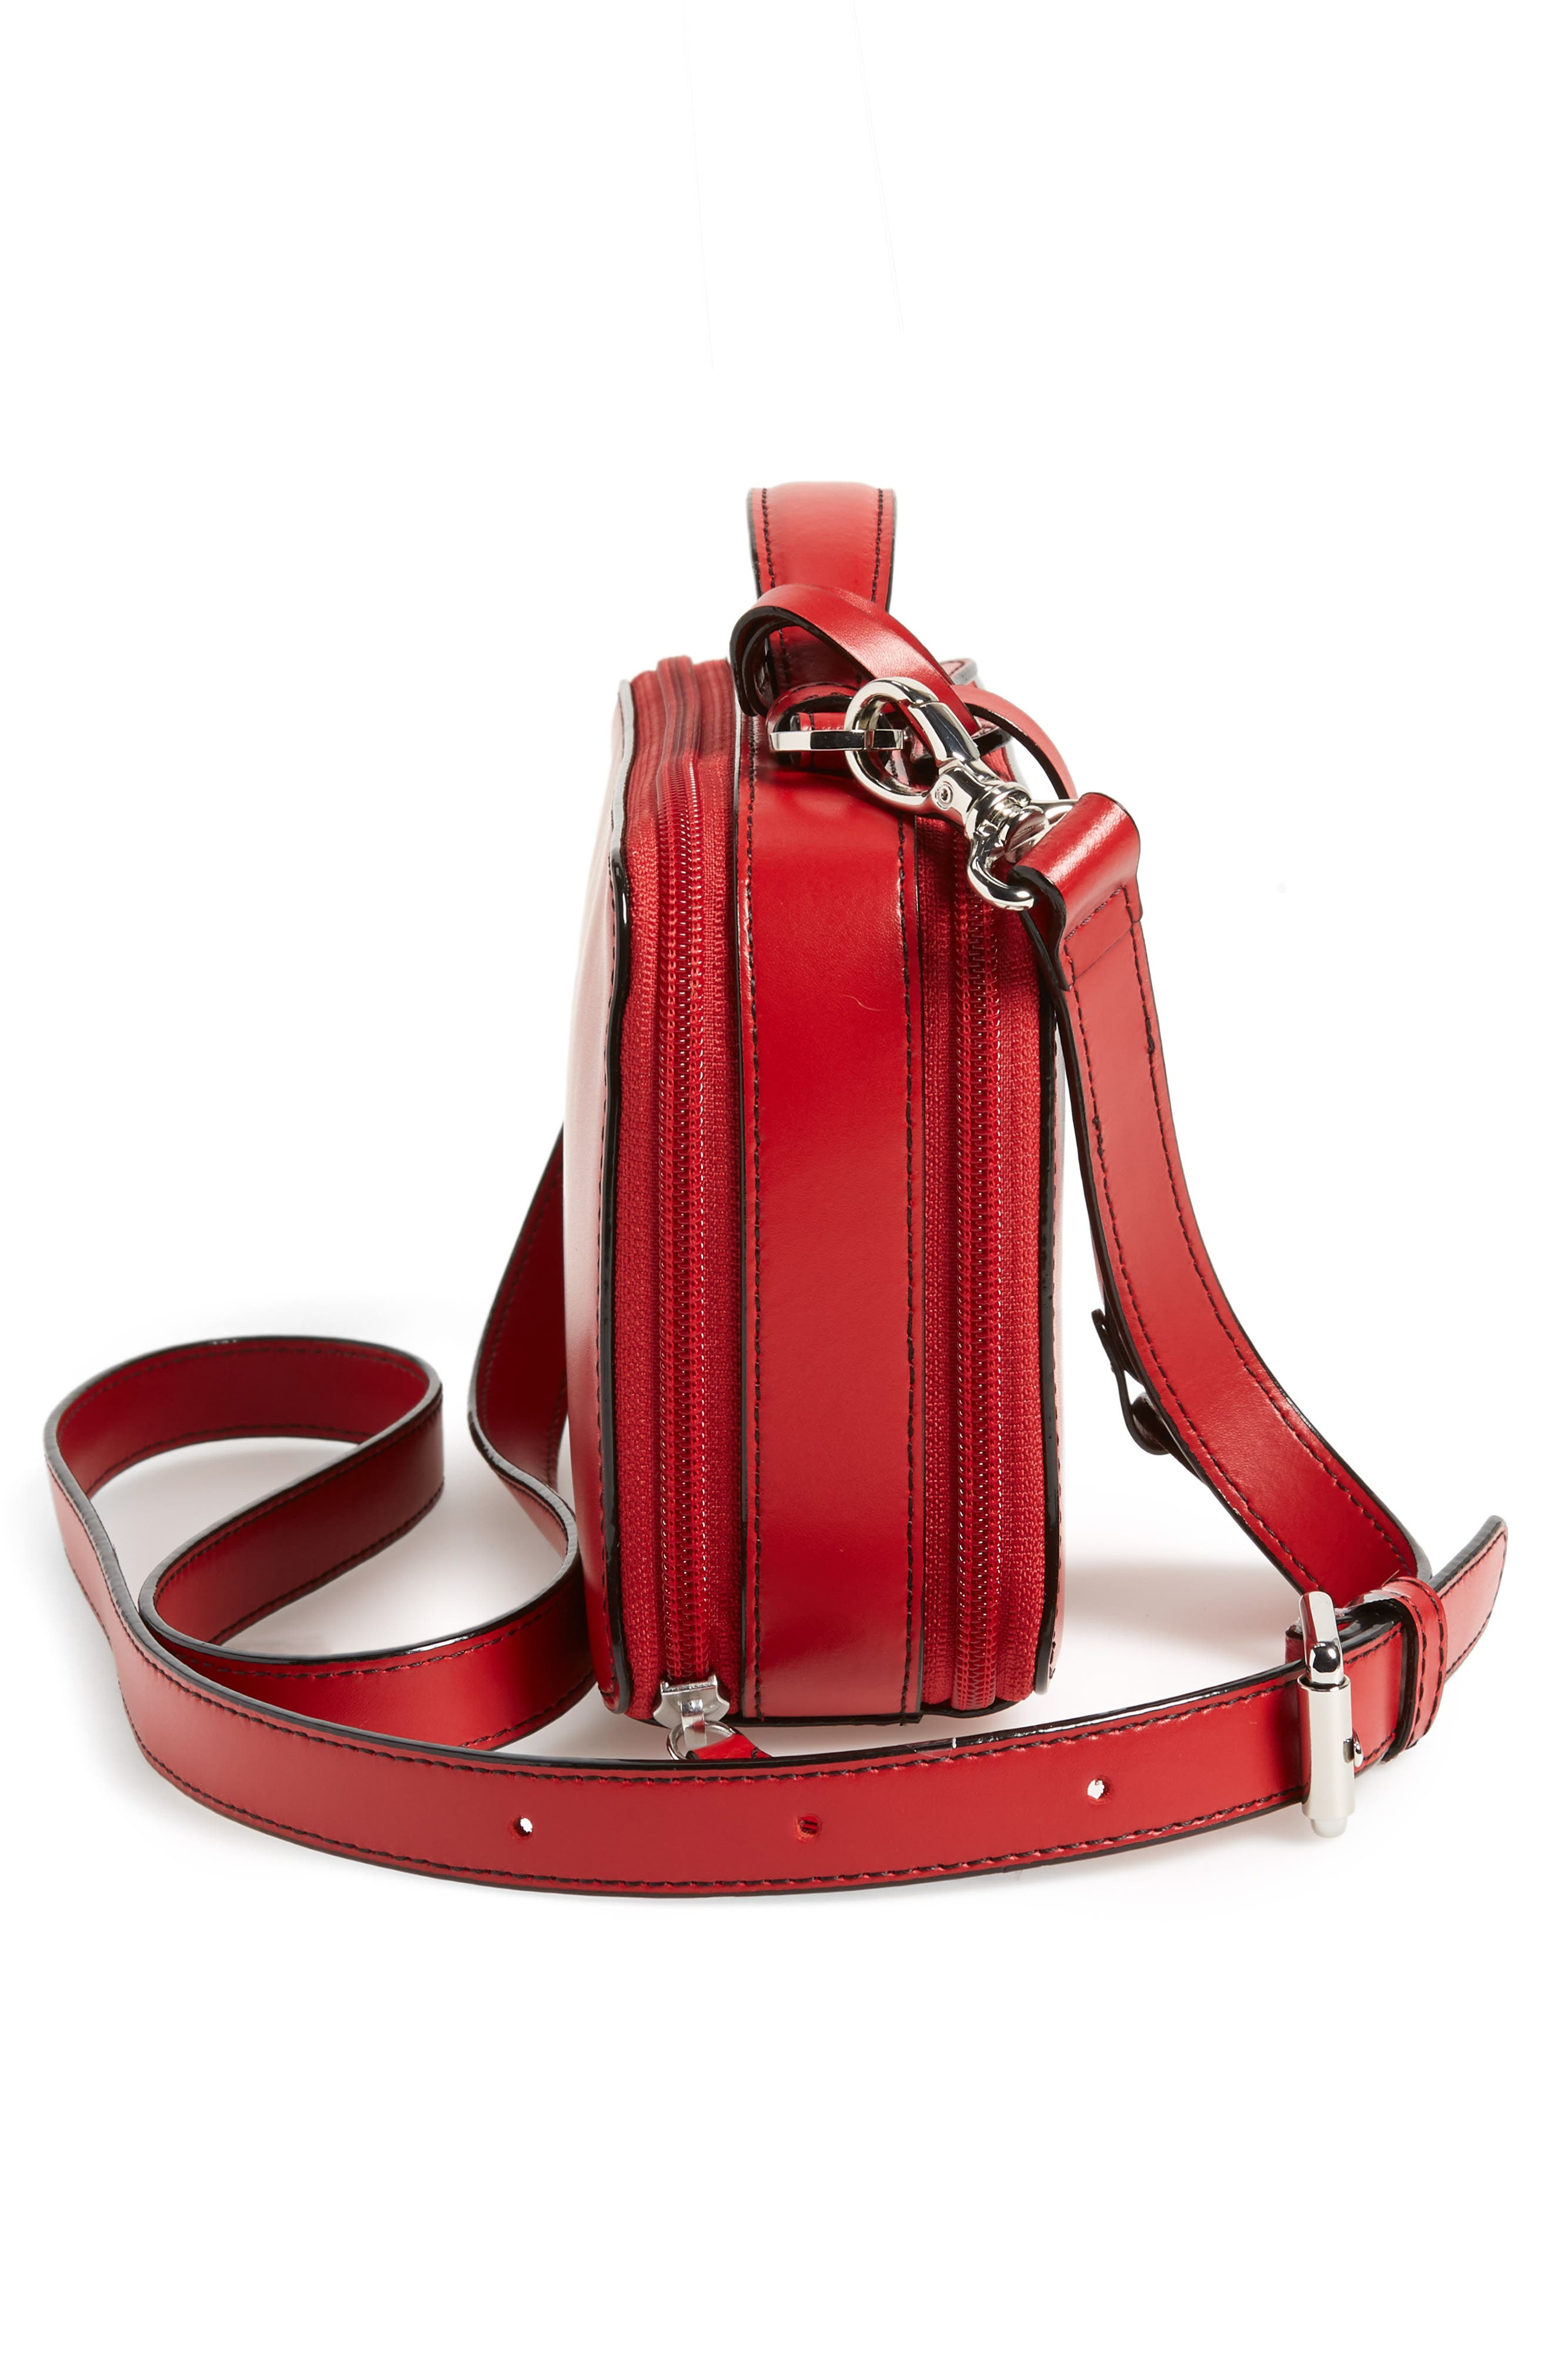 Downtown Sally RFID Zip-Around Leather Crossbody Bag,                             Alternate thumbnail 5, color,                             RED